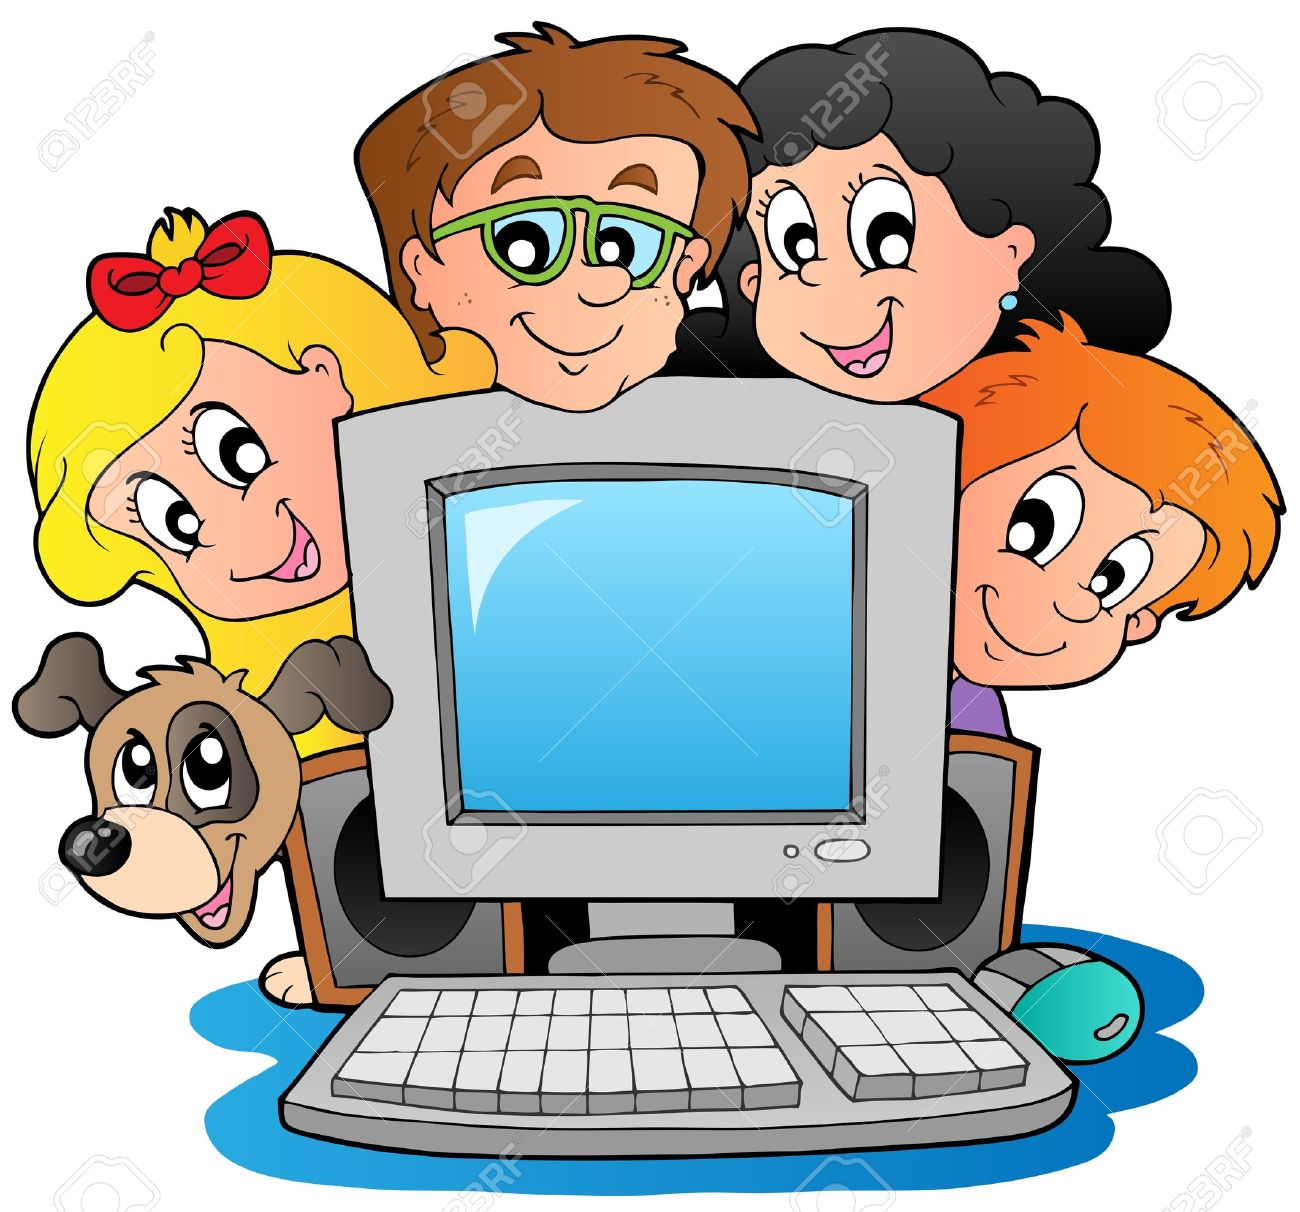 Image result for cartoon computer